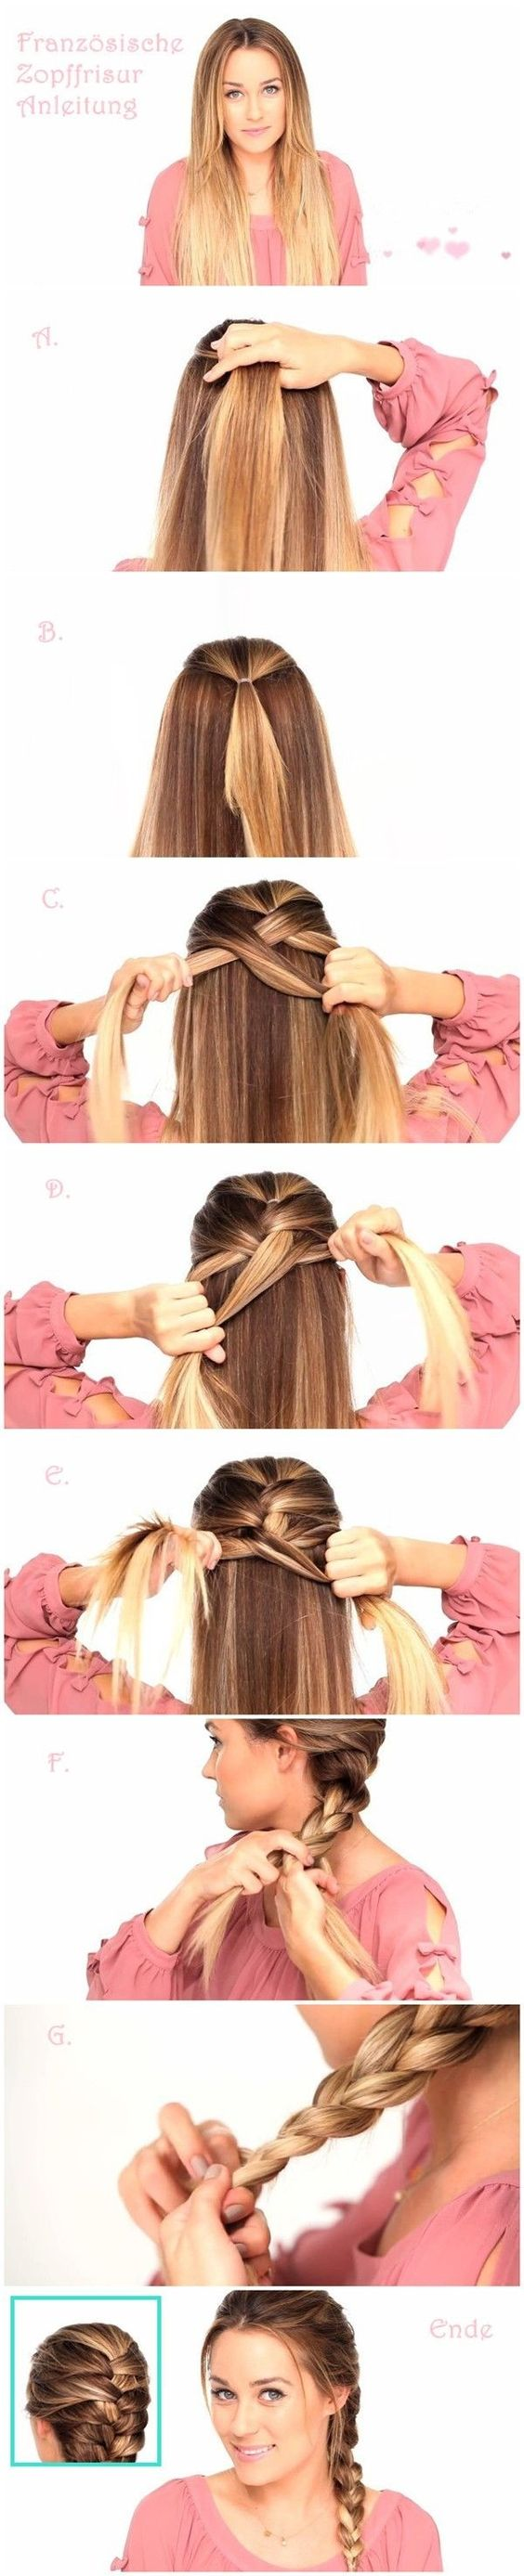 best images about hair on pinterest revolvers bobby pins and